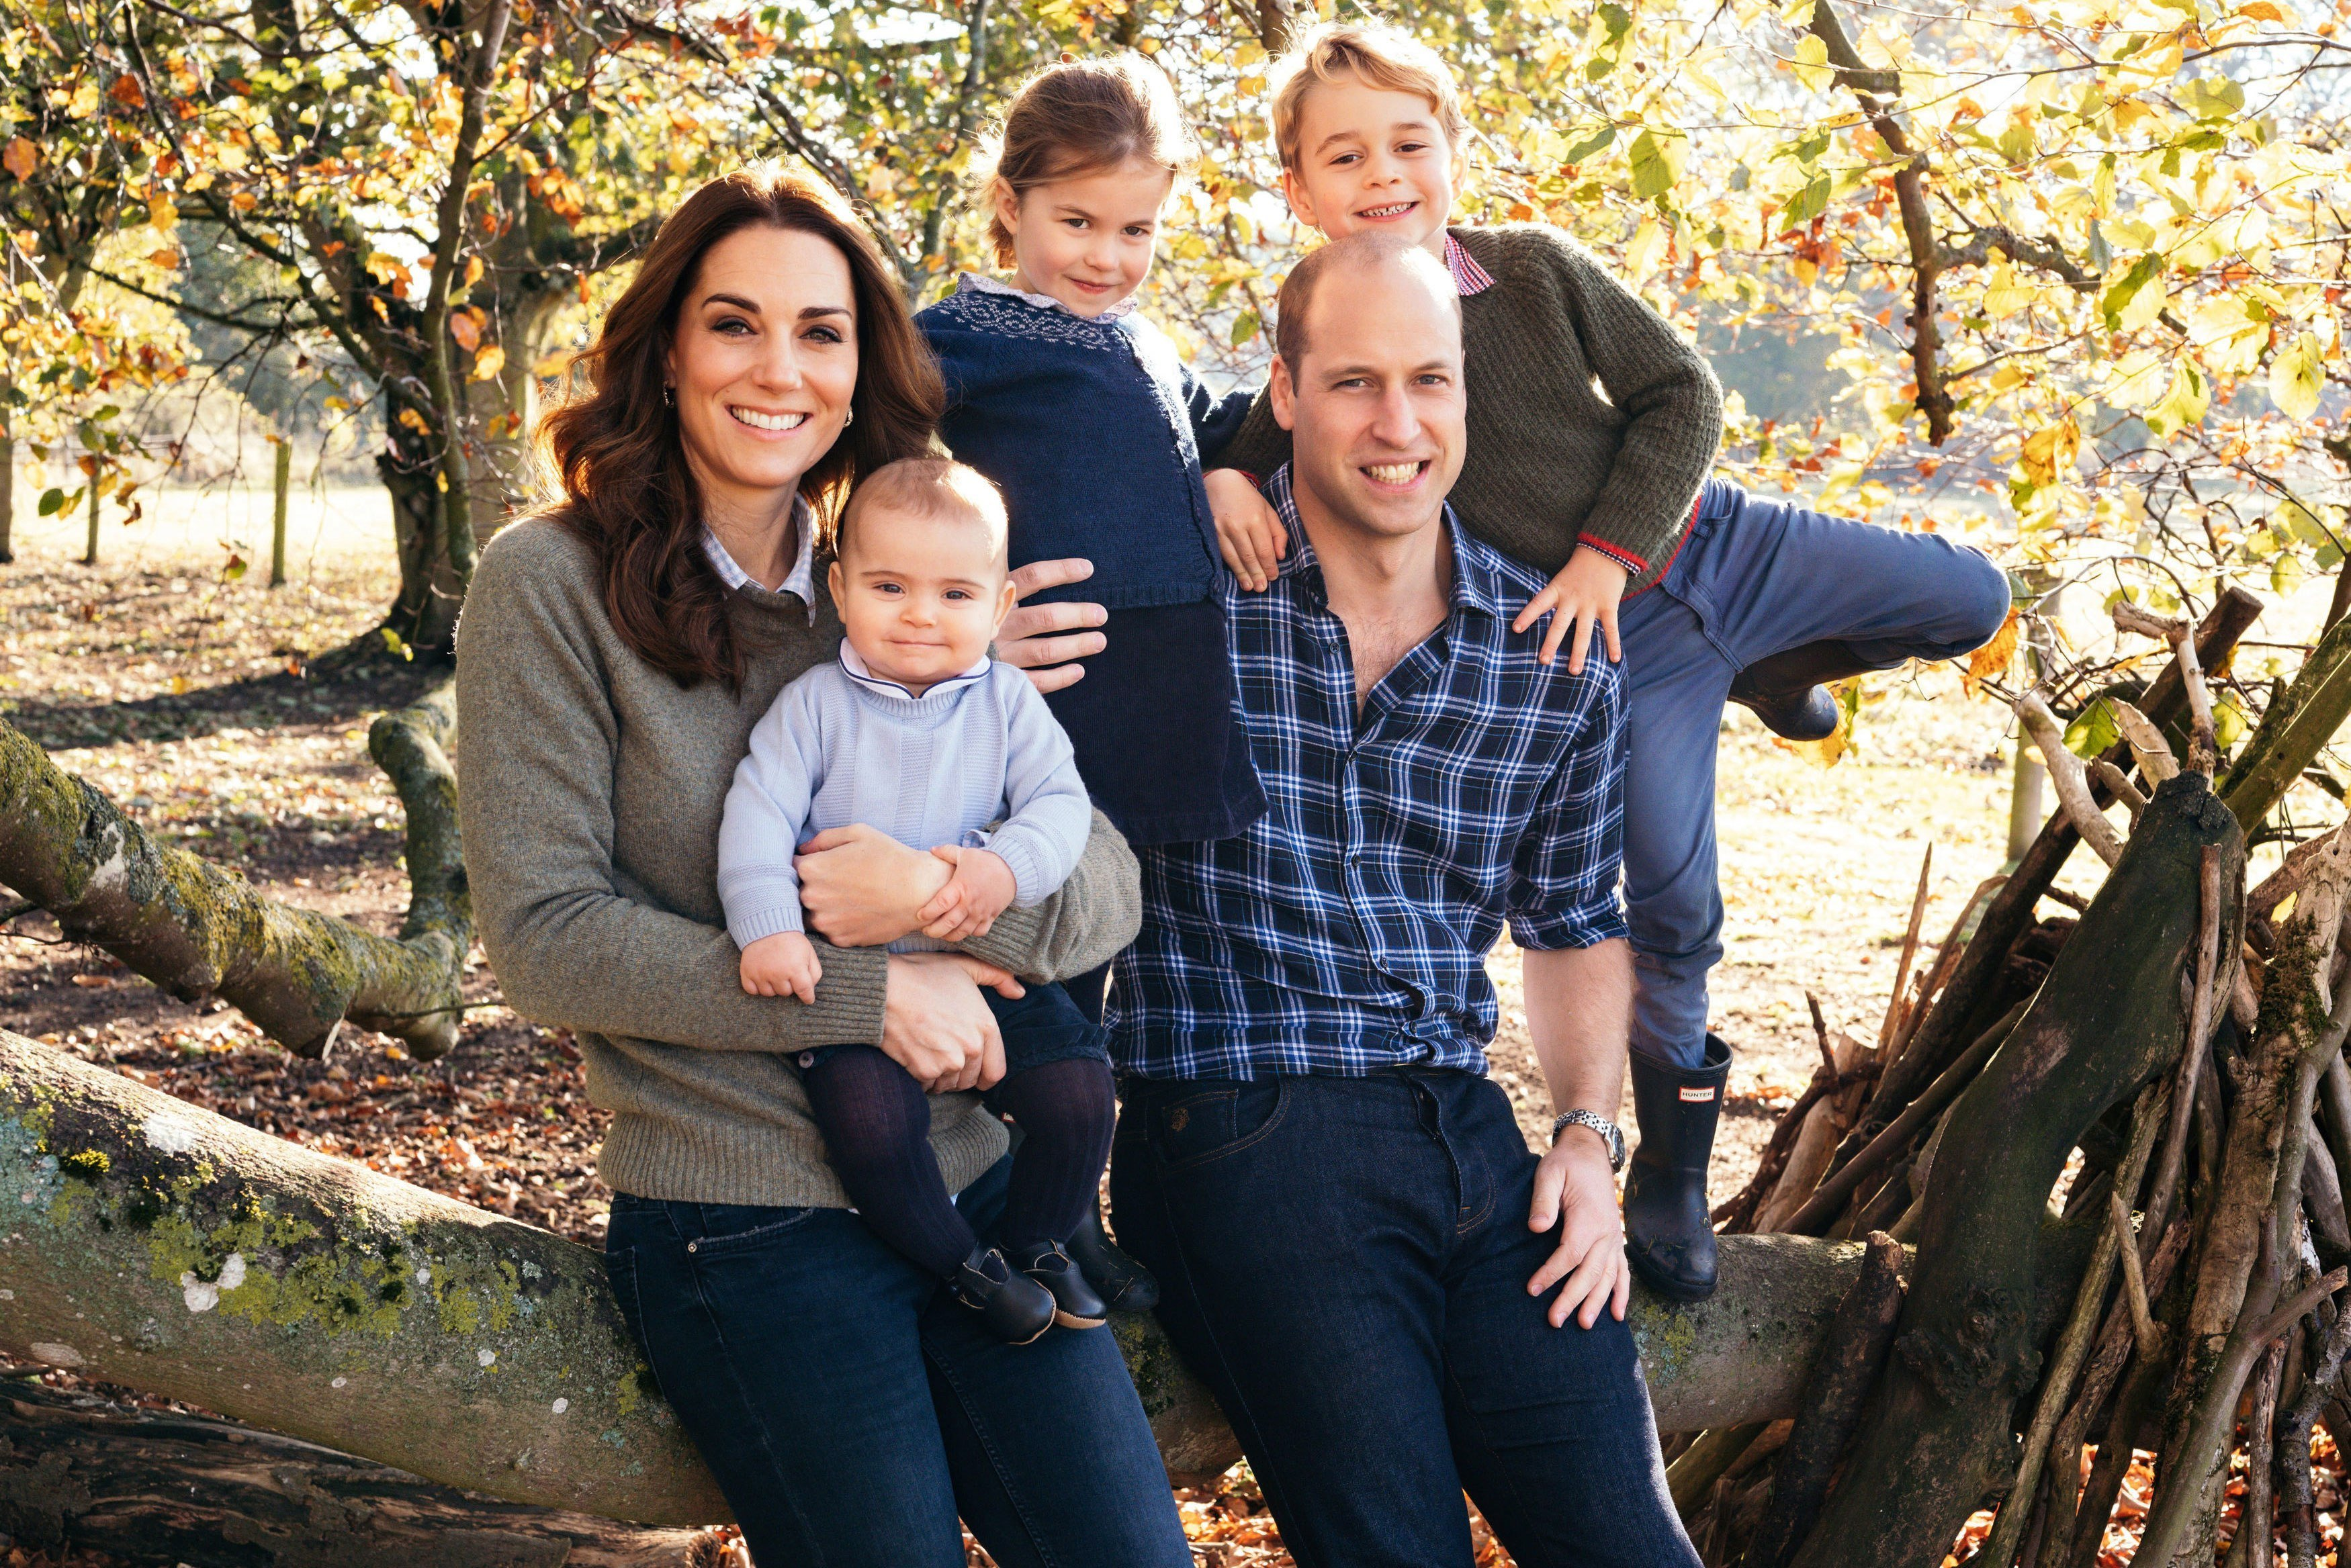 Prince George wears jeans for the first time in family Christmas card